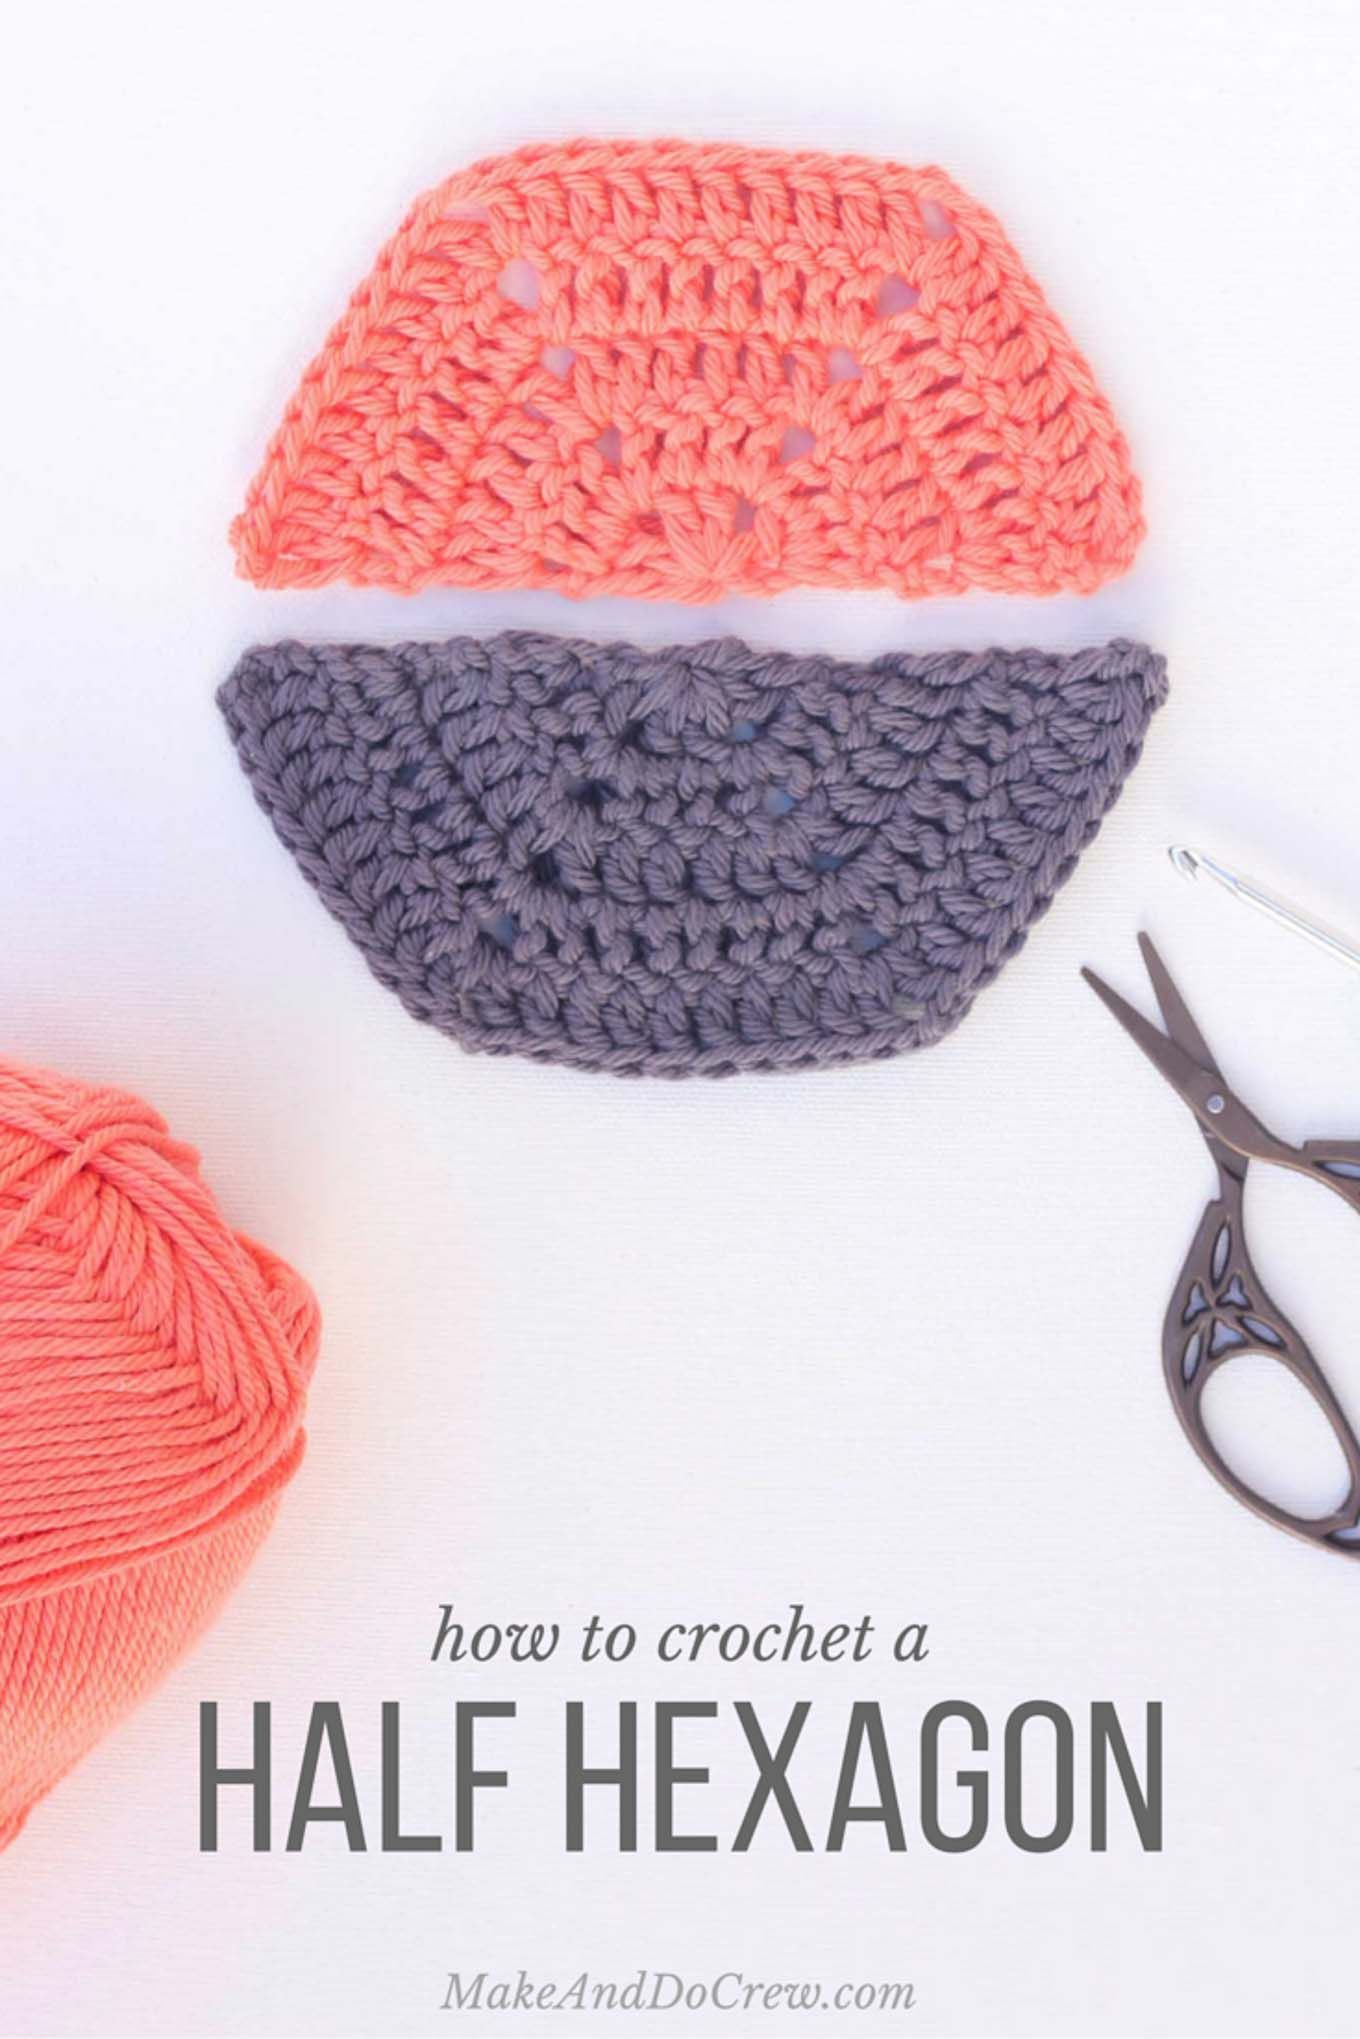 Tutorial how to crochet a half hexagon afghans free pattern tutorial how to crochet a half hexagon crochet hexagon blankethexagon crochet patterncrochet bankloansurffo Image collections